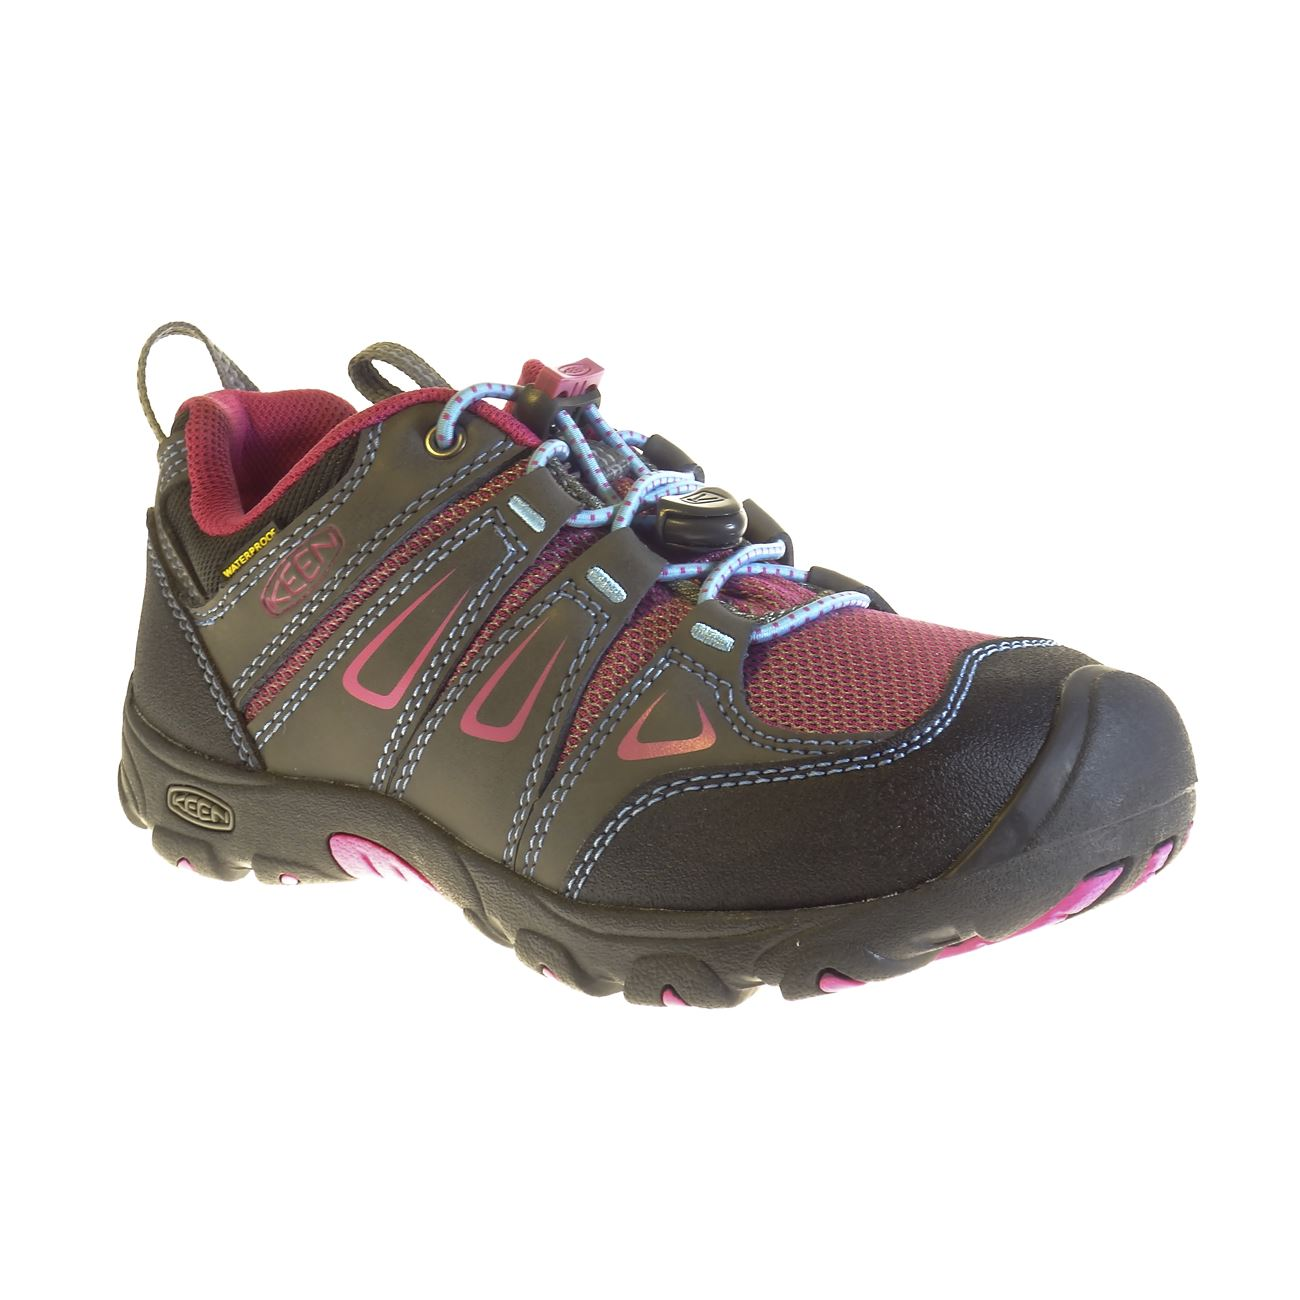 KEEN, Oakridge Low WP, Youth, Magnet/Very Berry Shoes Keen Magnet/Very Berry 1